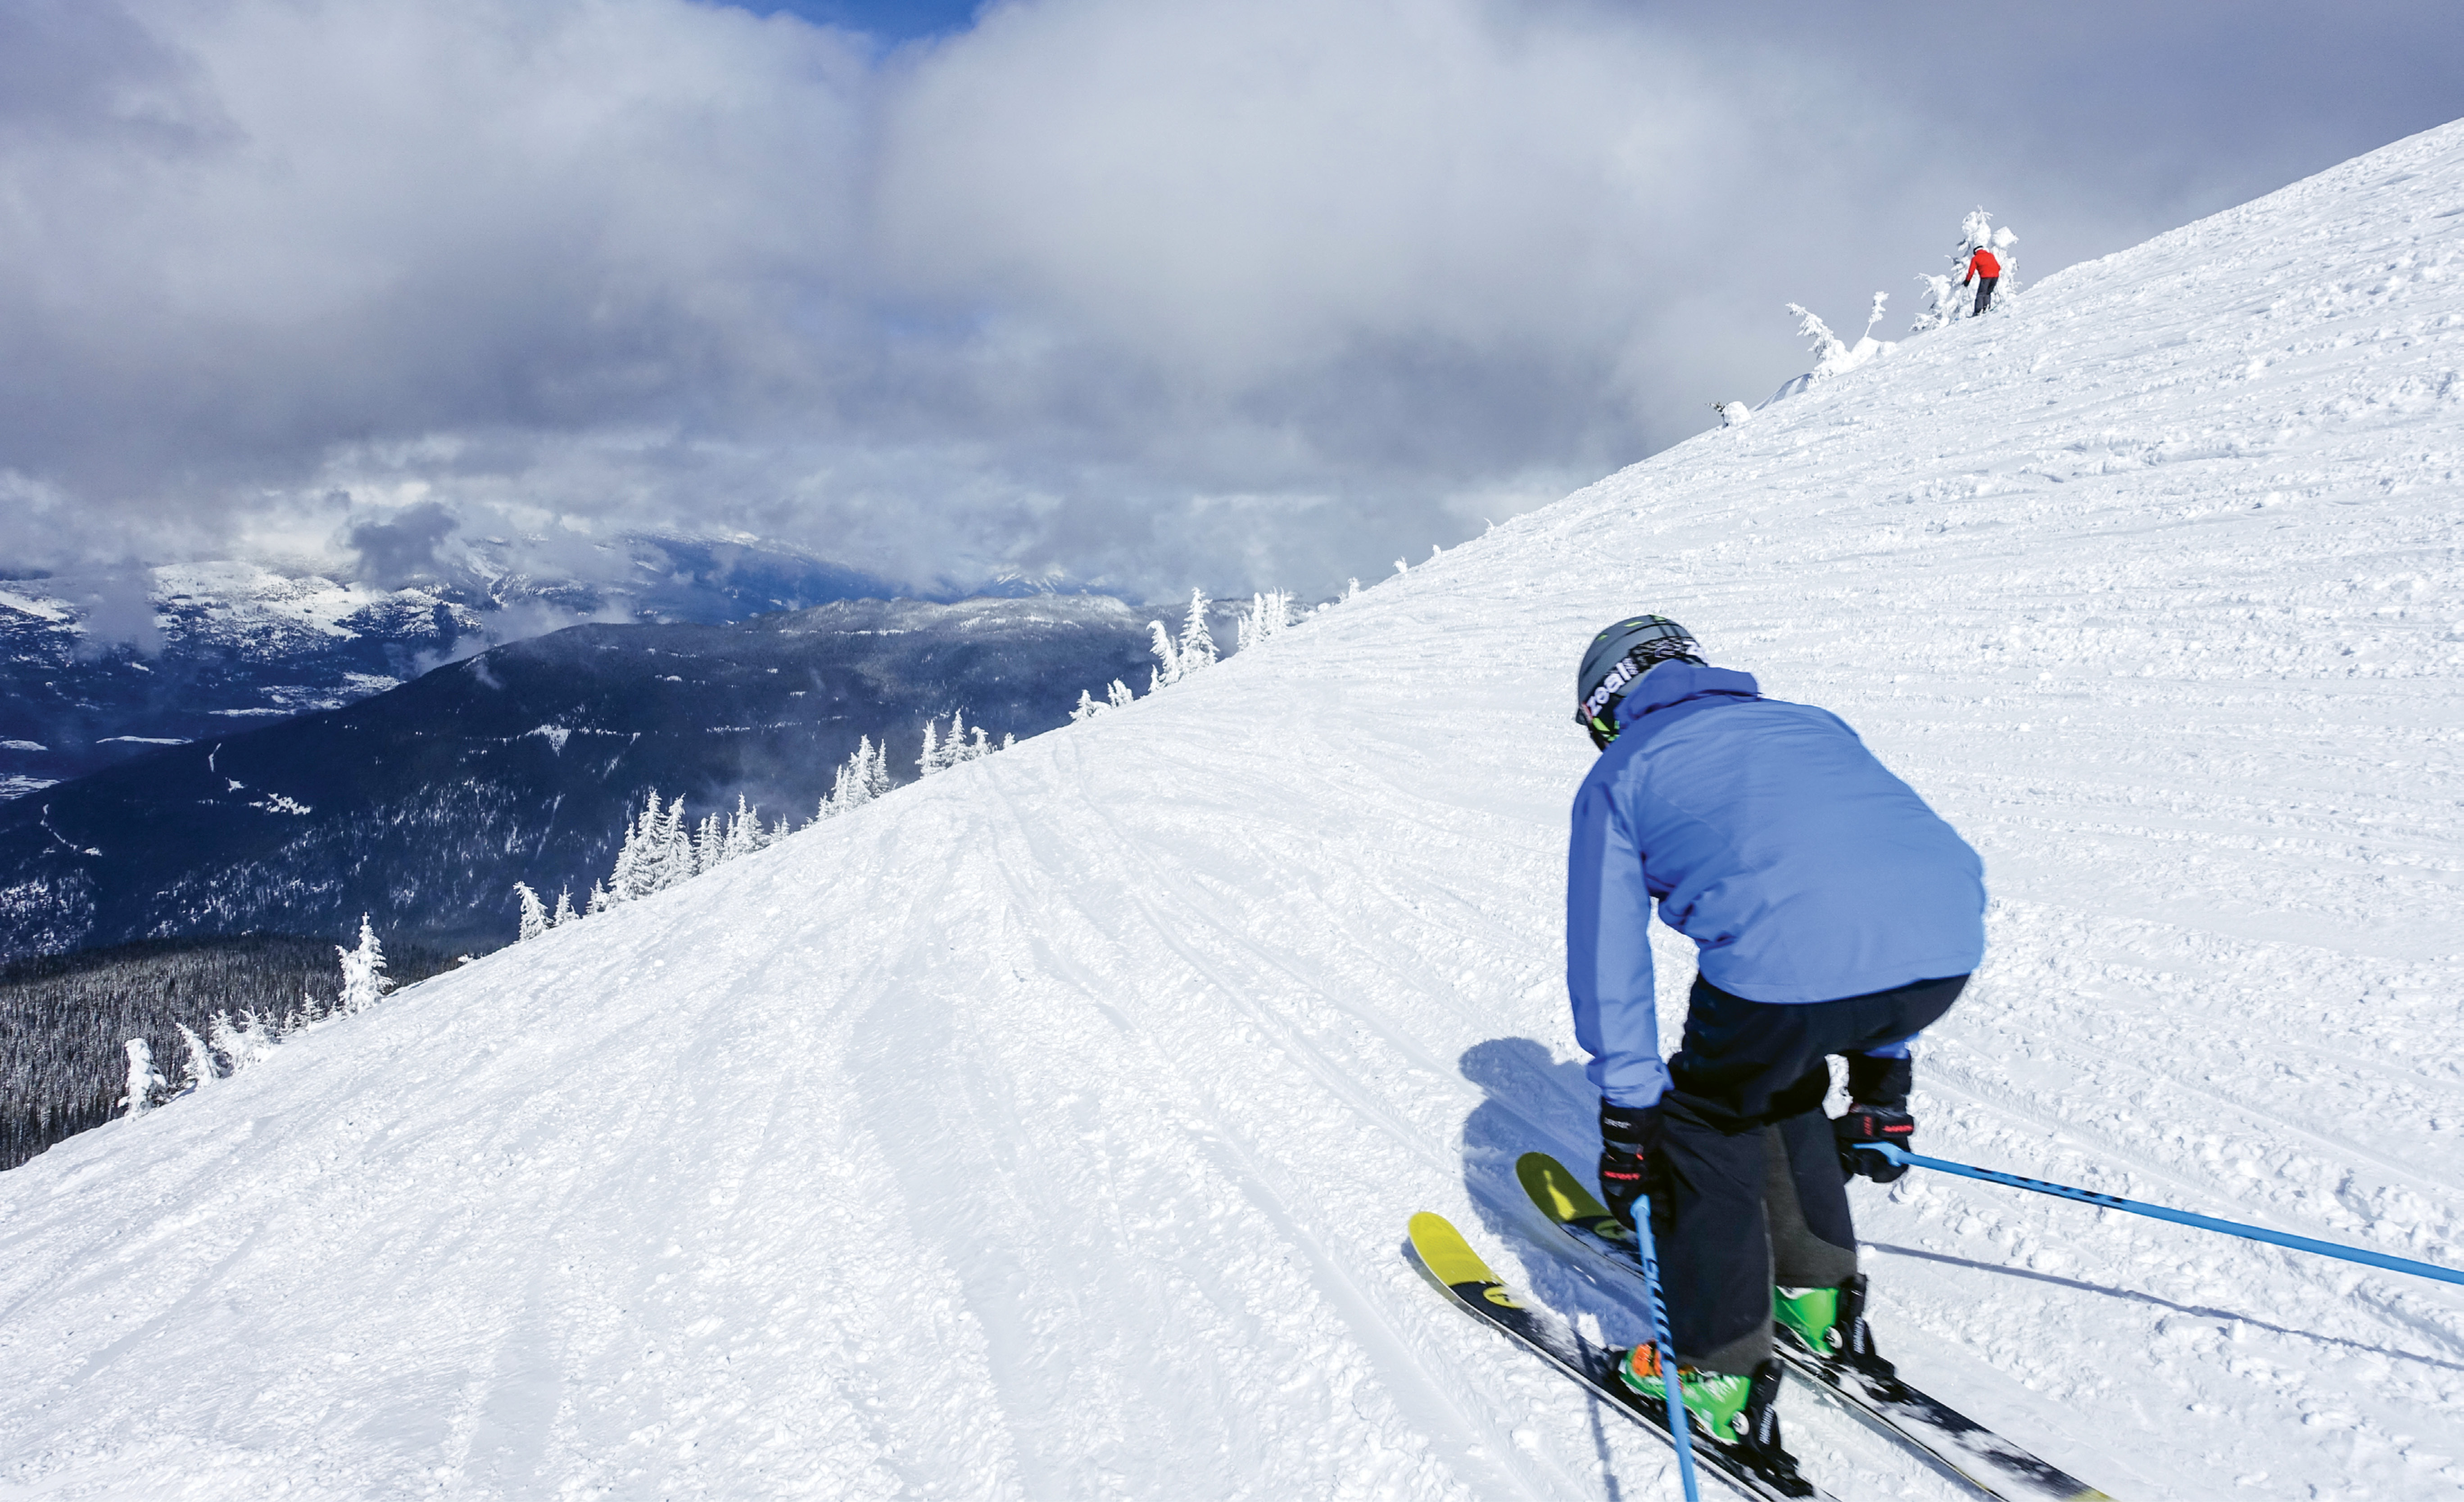 Stoked in Revelstoke: An easy traverse from the top of the British Columbia resort's highest lift yields a vast mountainside of fluffy snow bowls and inviting forested trails.